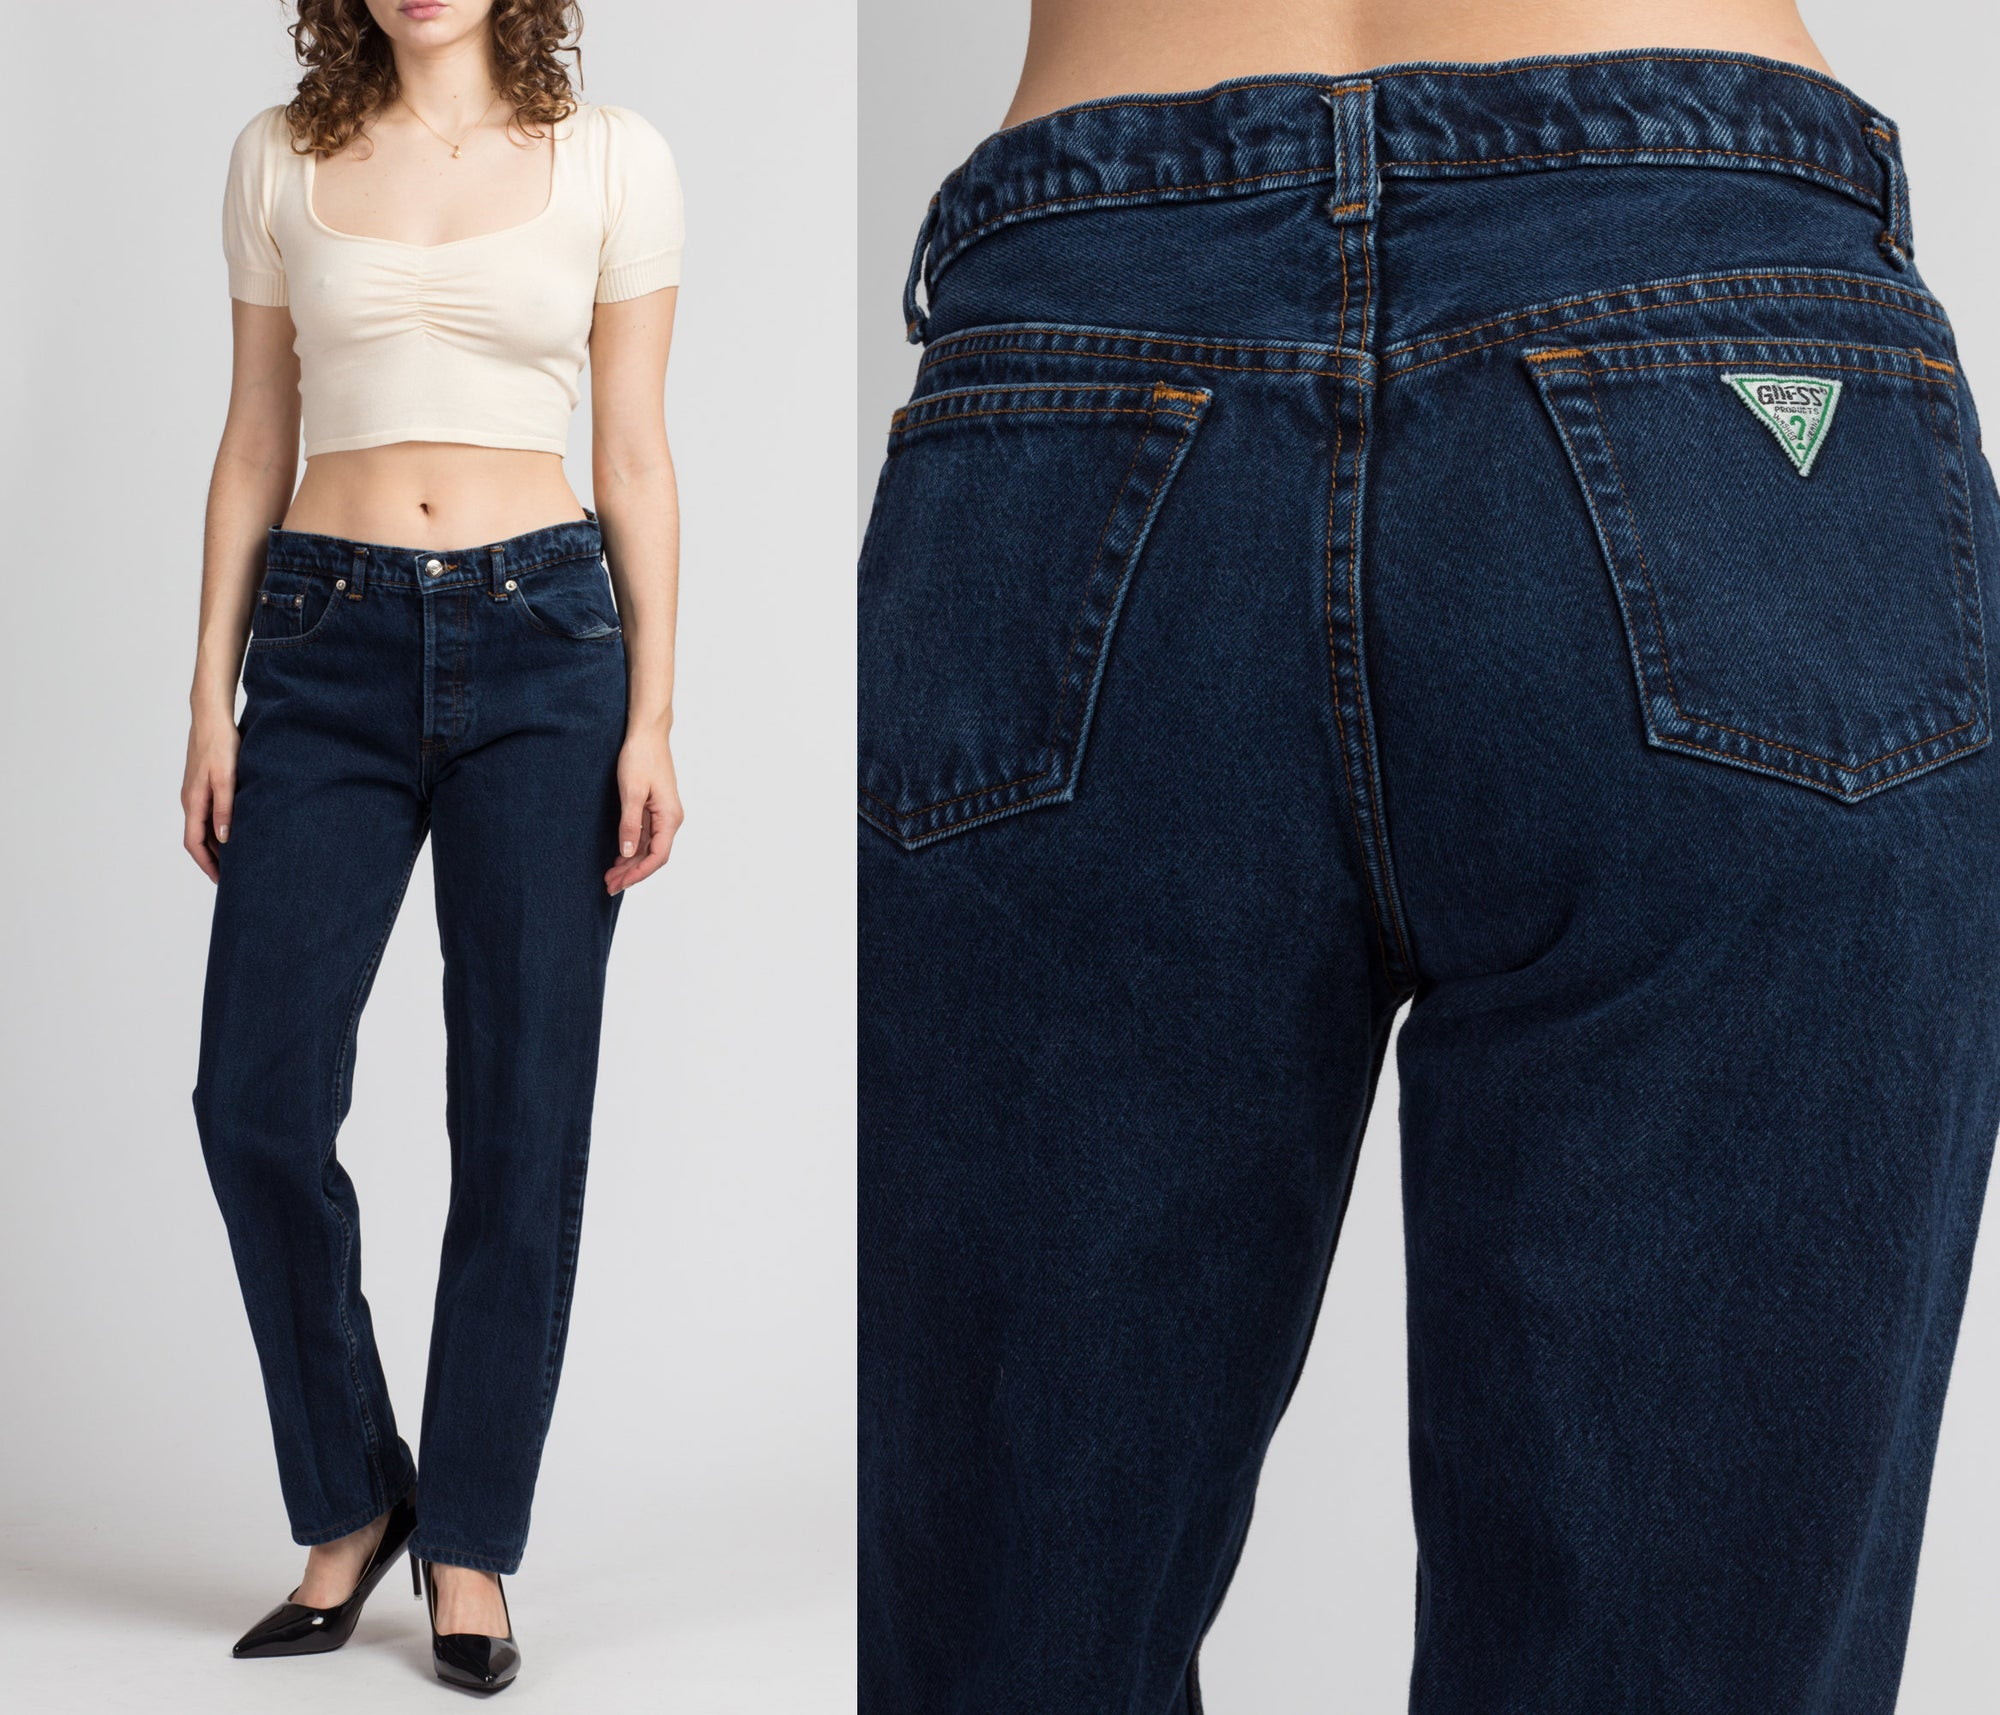 Vintage High Waist Guess Jeans - Medium, 31""